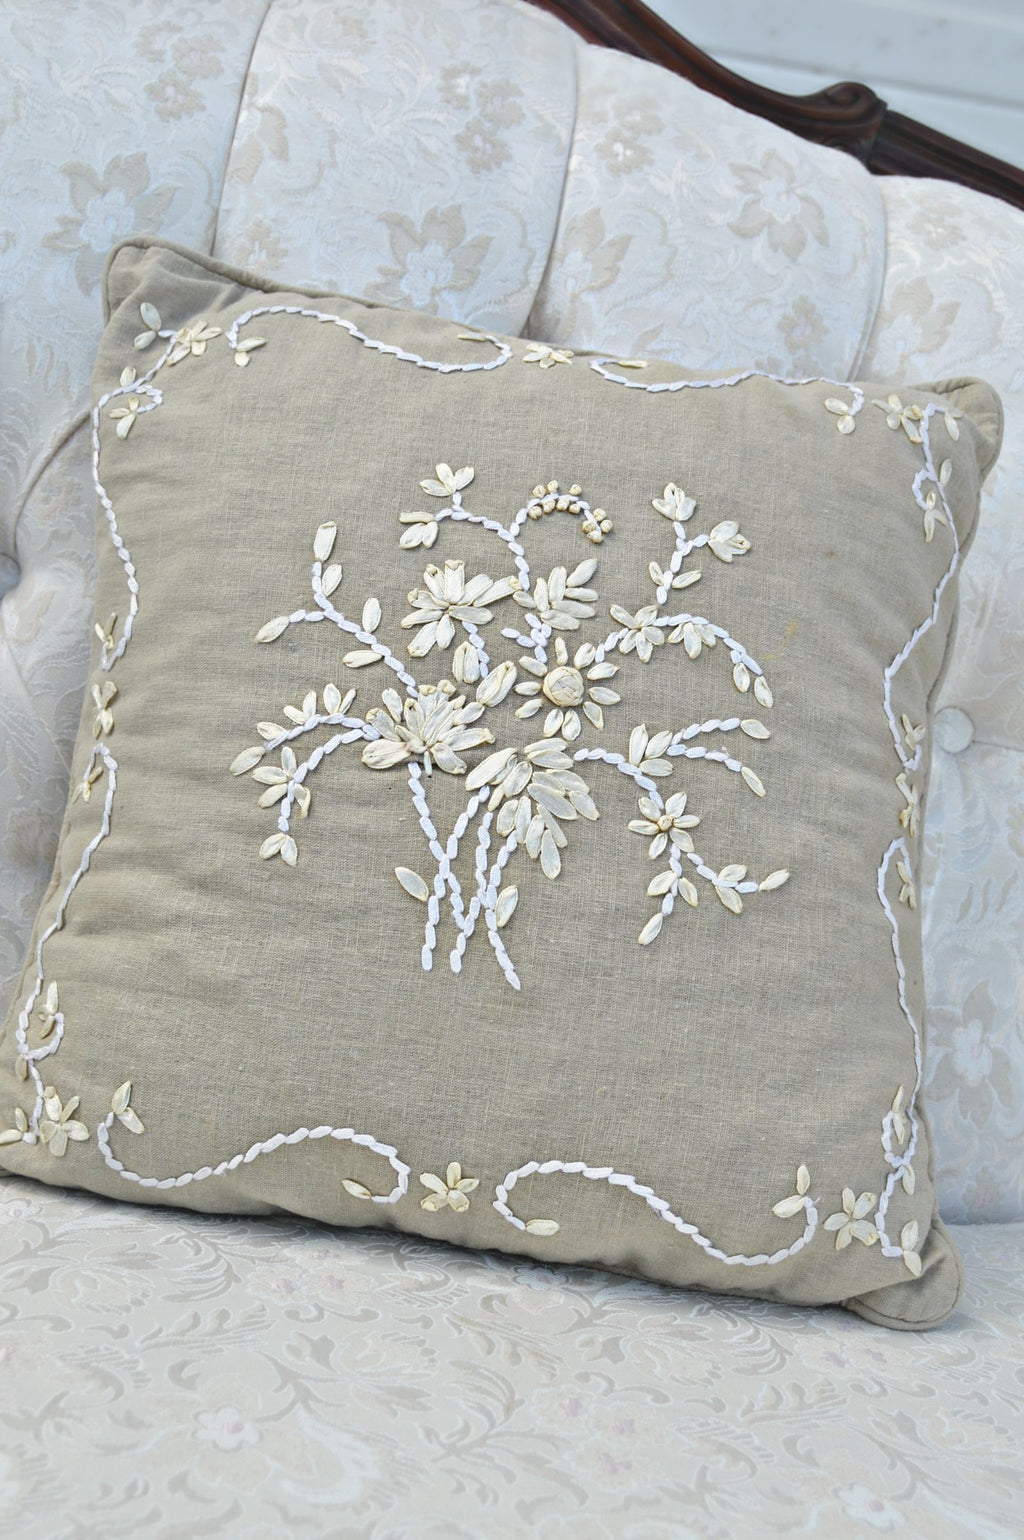 Tan pillow with ivory patterned ribbon embroidery